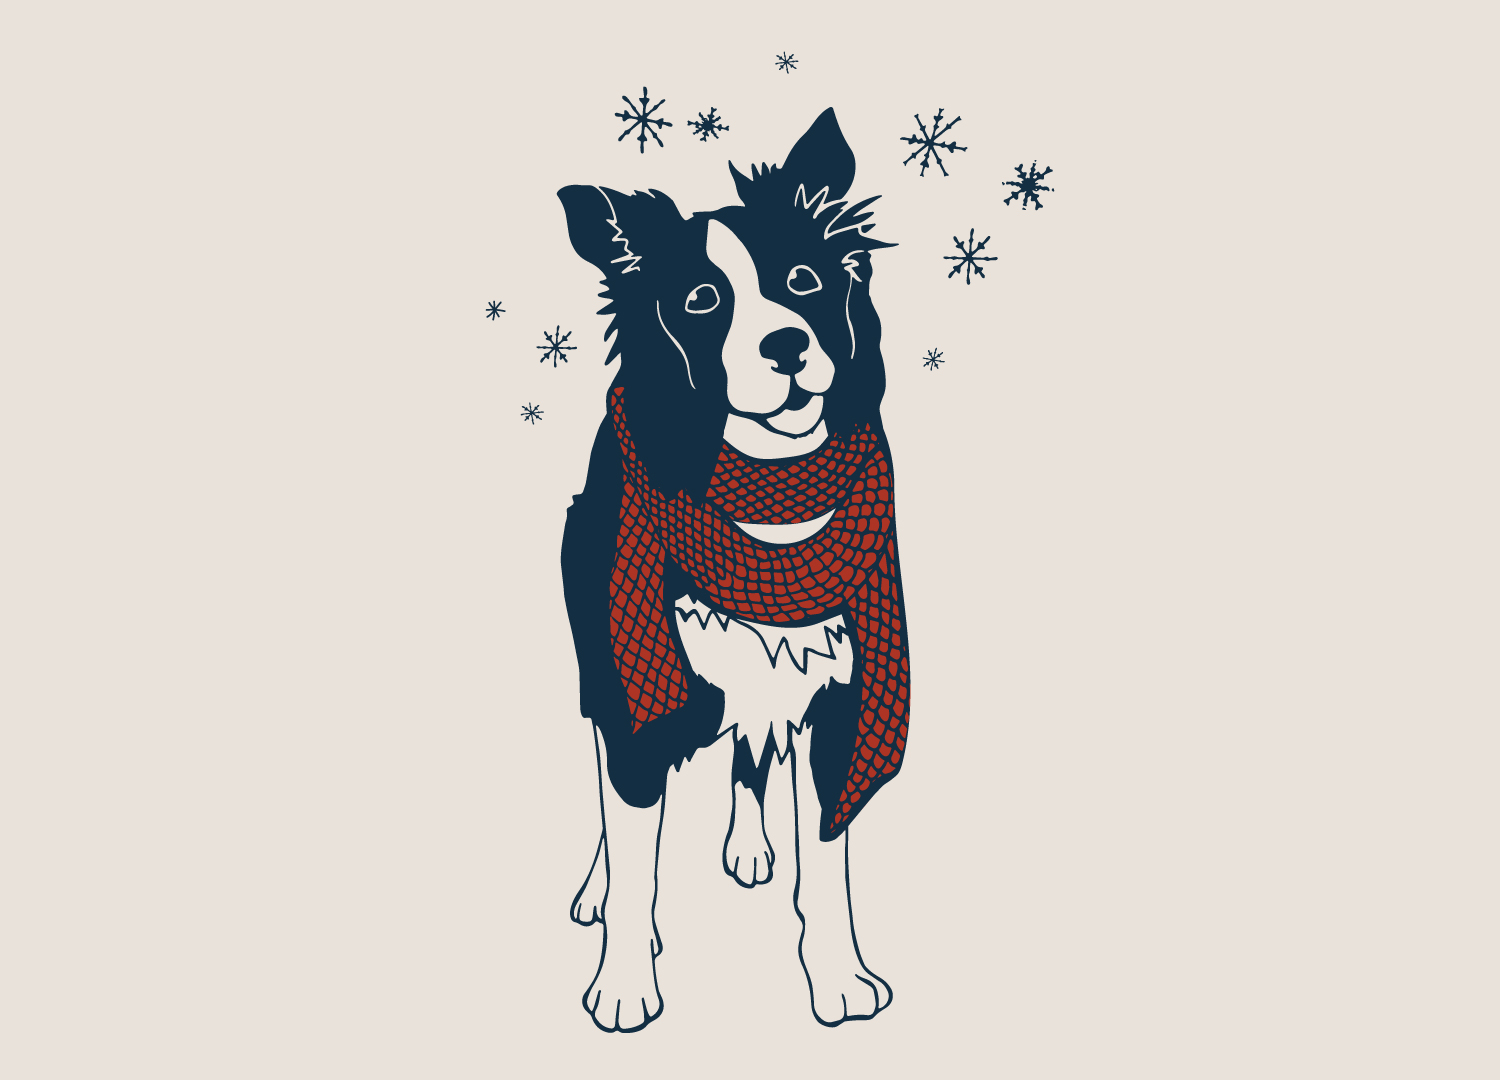 An illustration of a wintery dog wearing a scarf created for Grounds & Hounds Coffee.